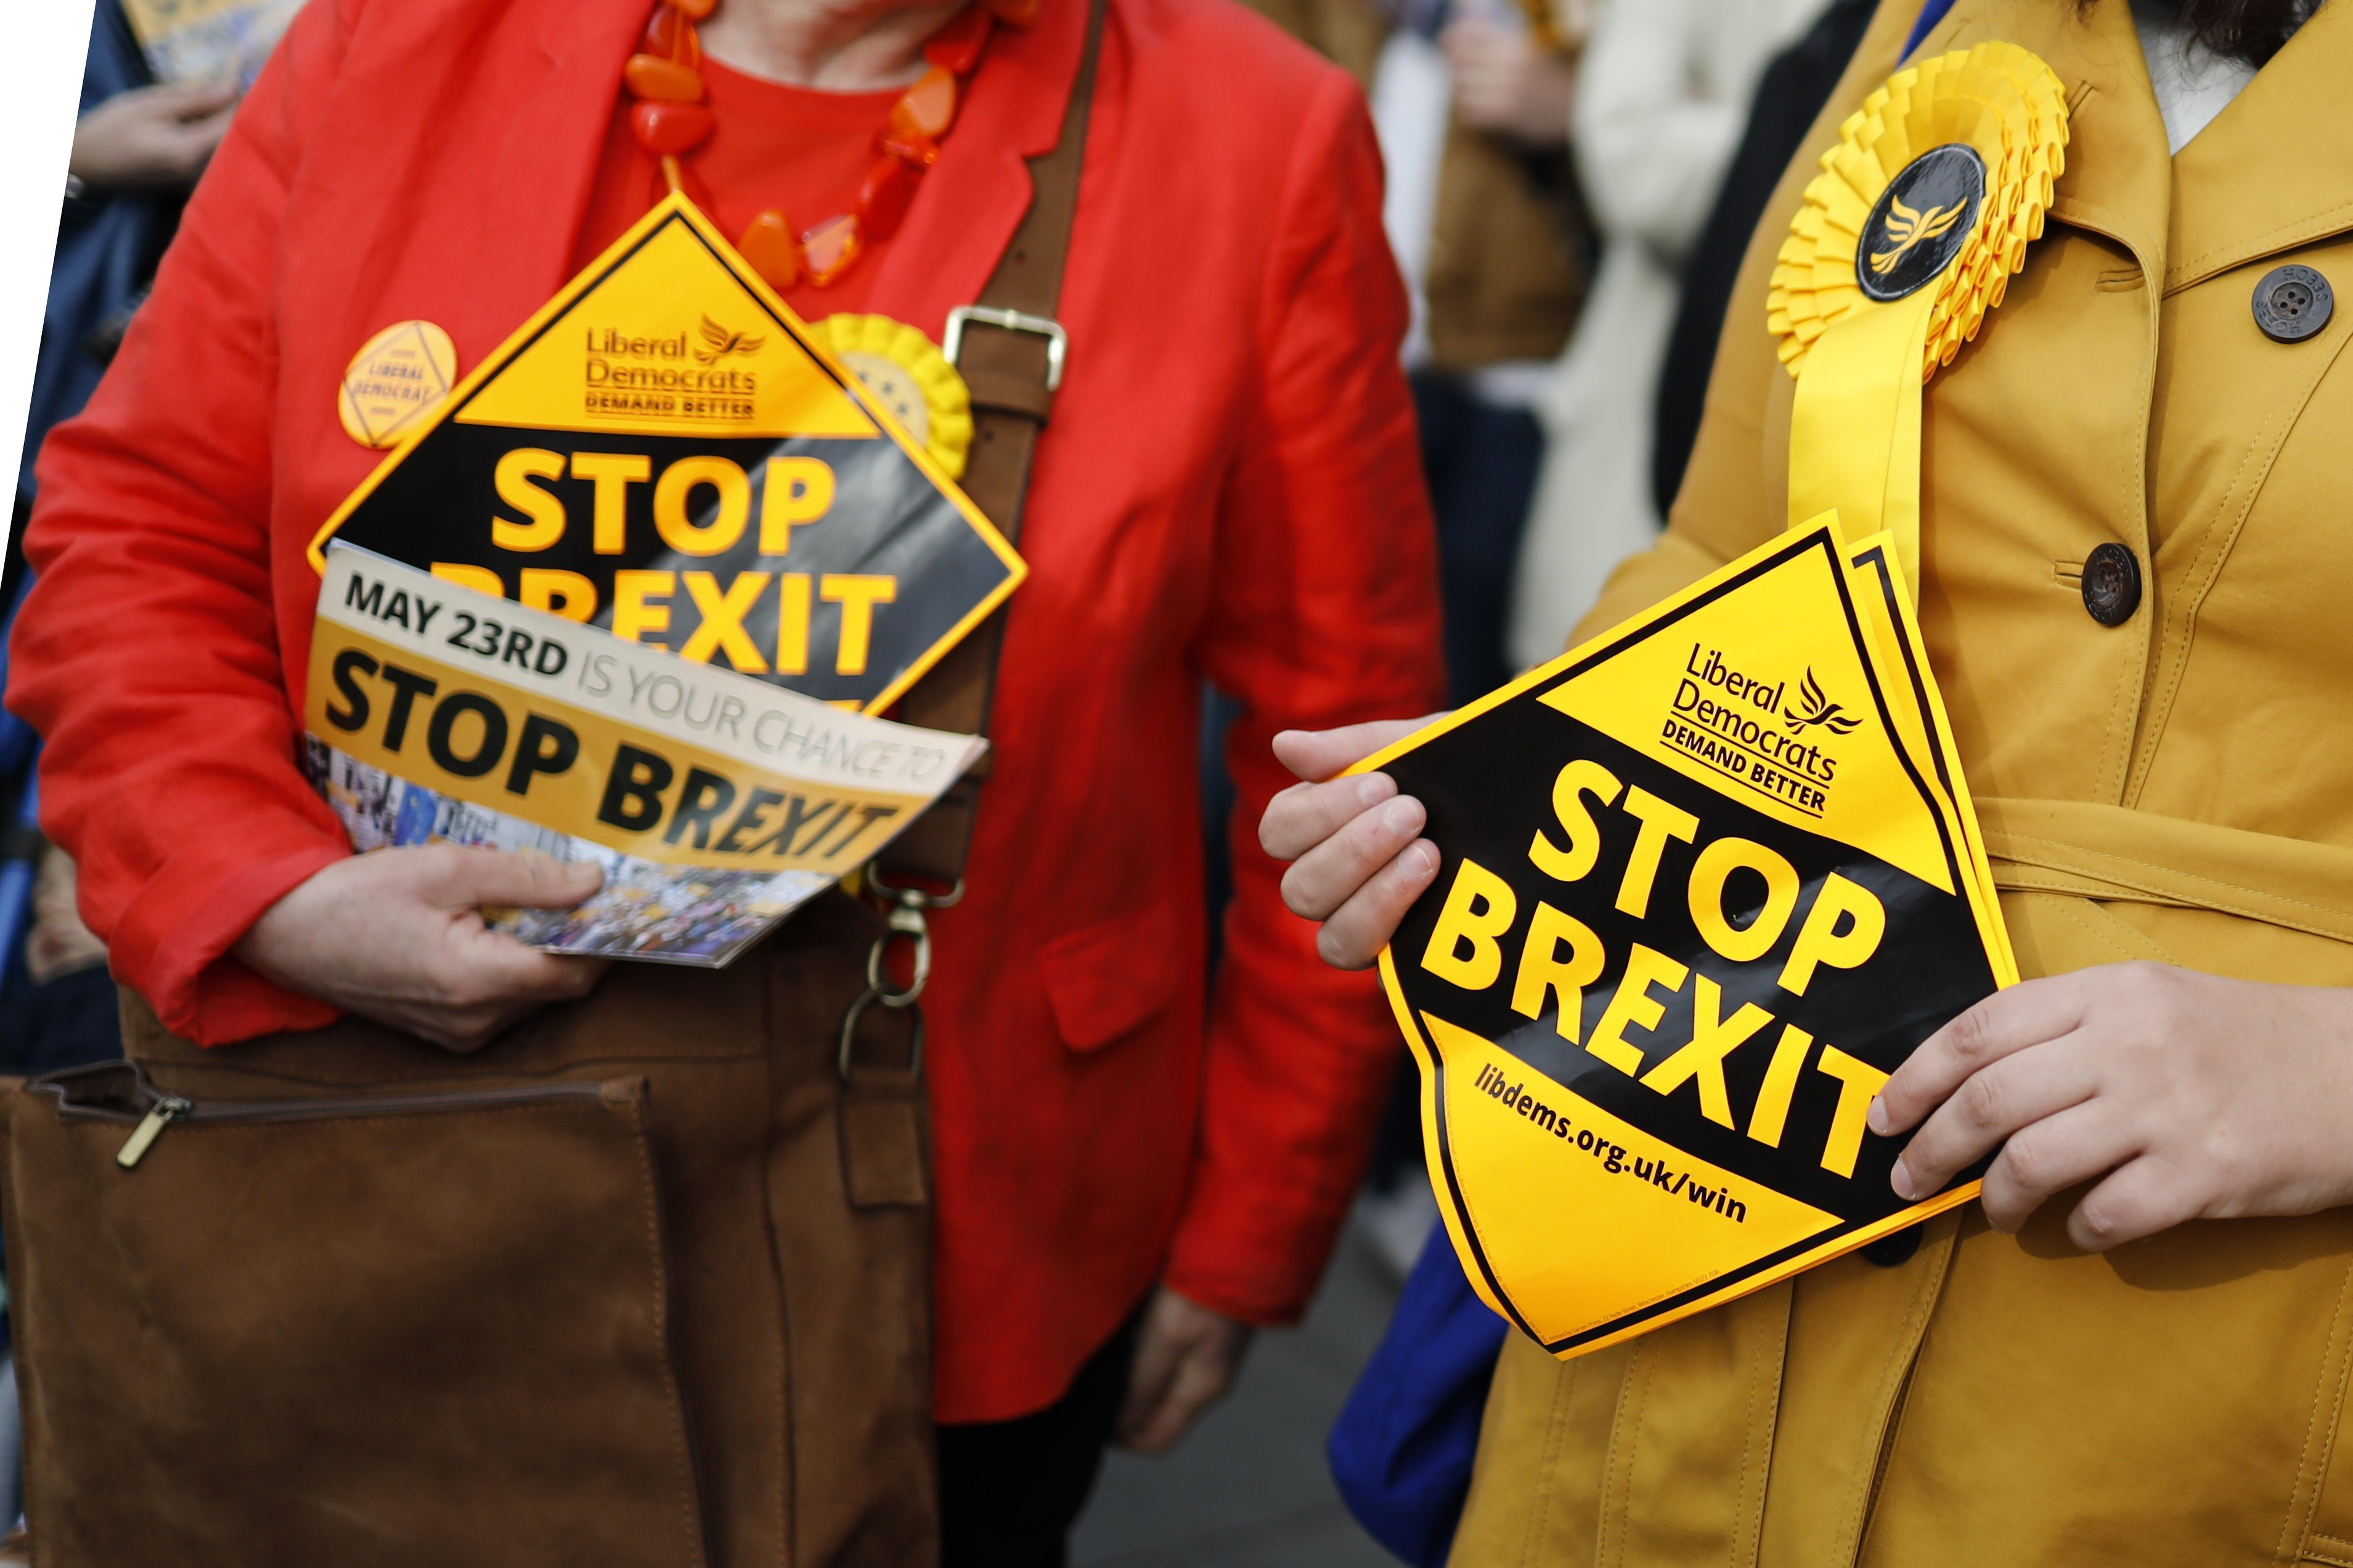 Can UK's Liberal Democrats stop Brexit? | South China Morning Post